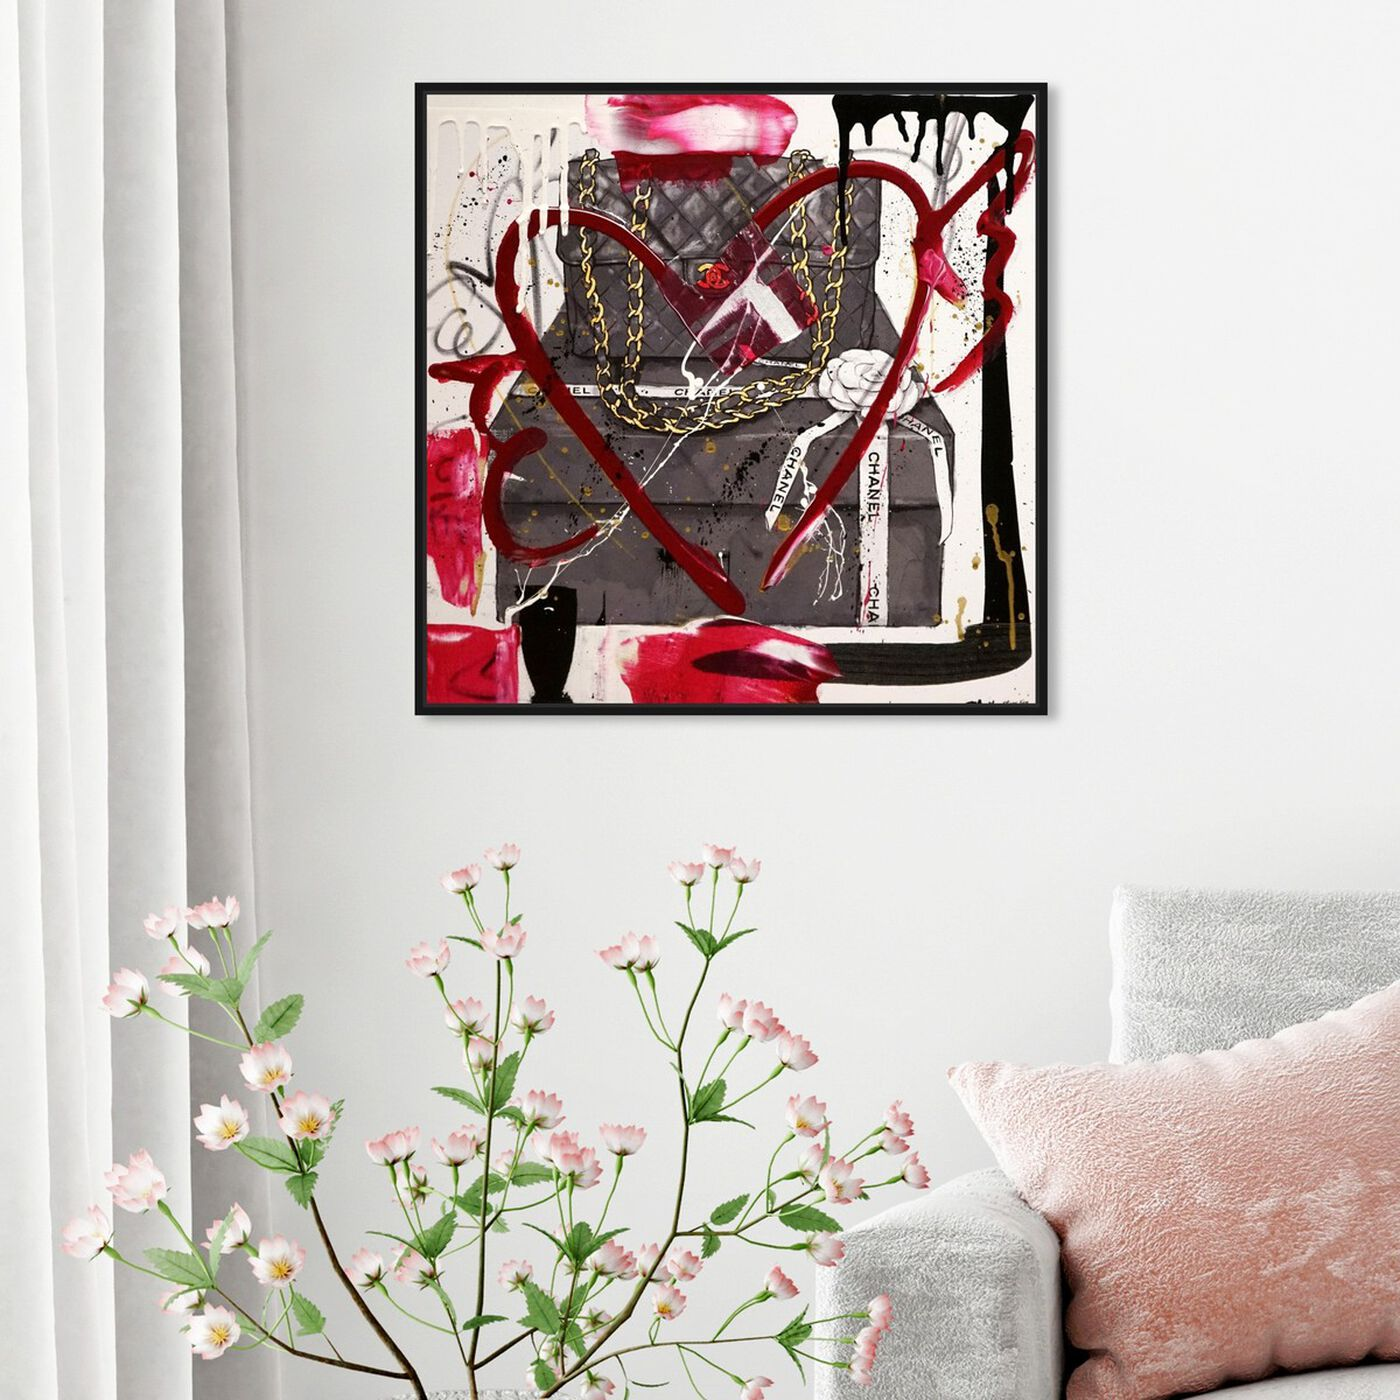 Hanging view of Boxed Beauty Remix featuring fashion and glam and handbags art.